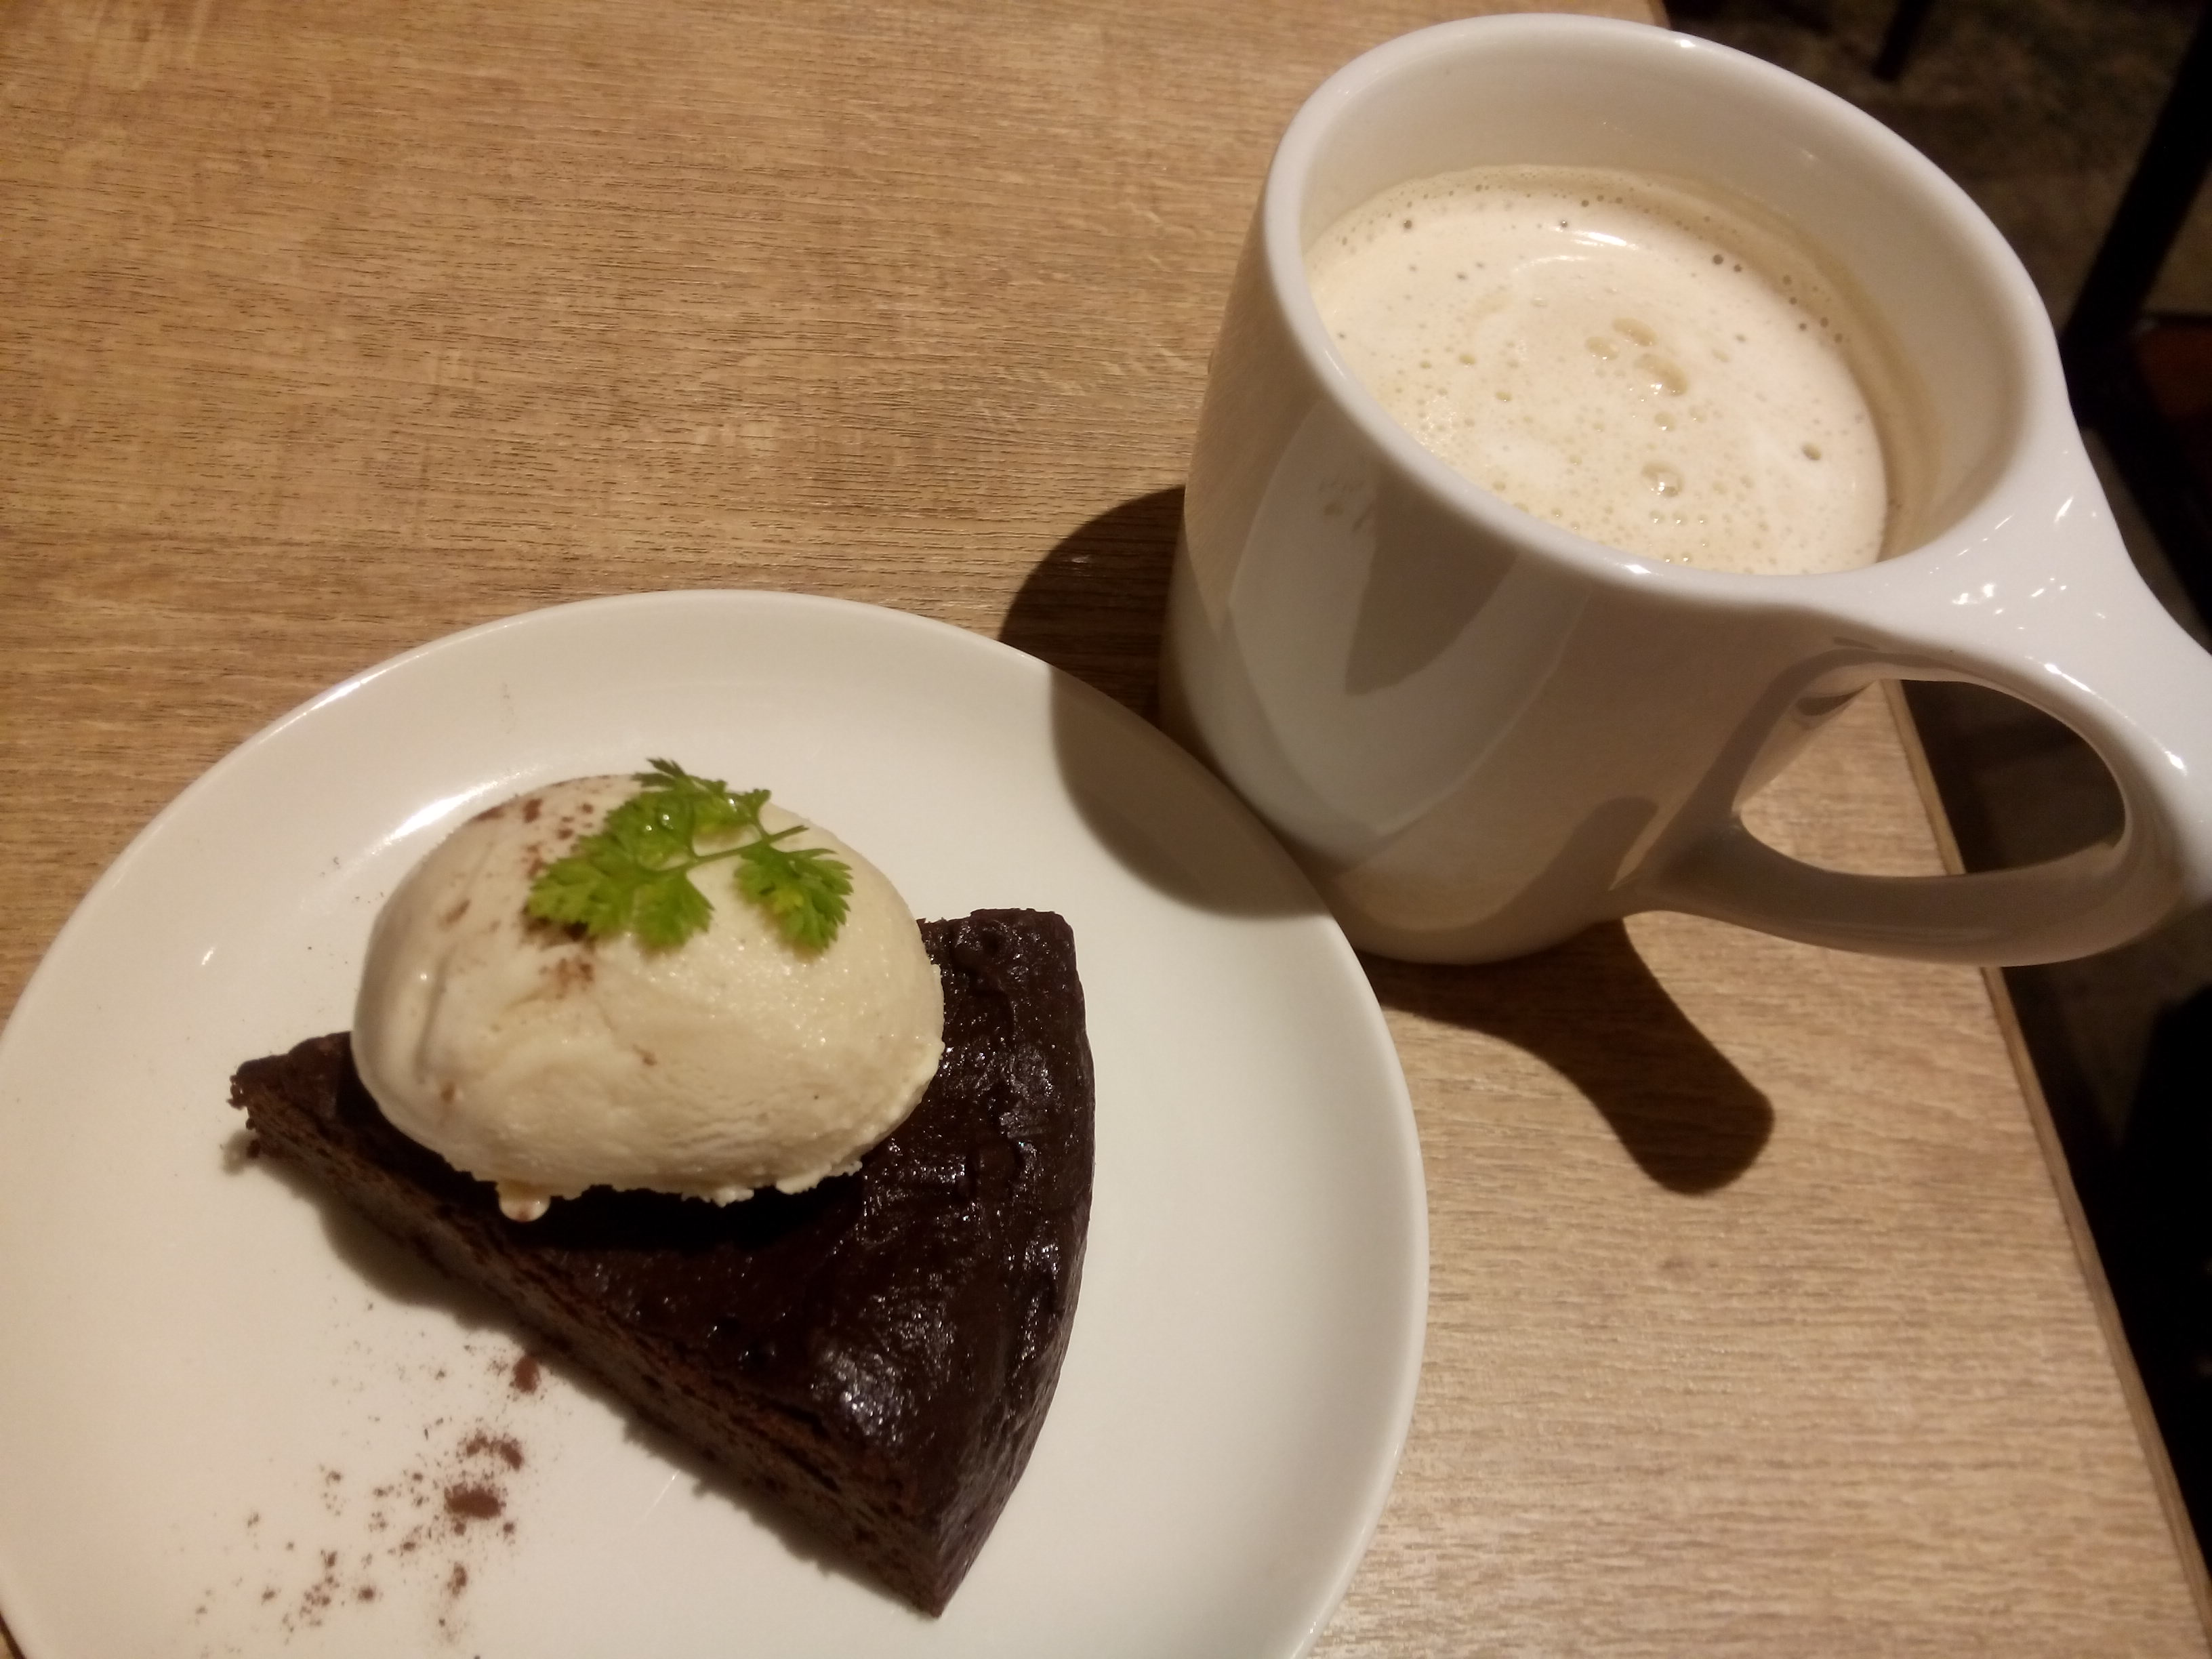 Chocolate gateau and soy latte